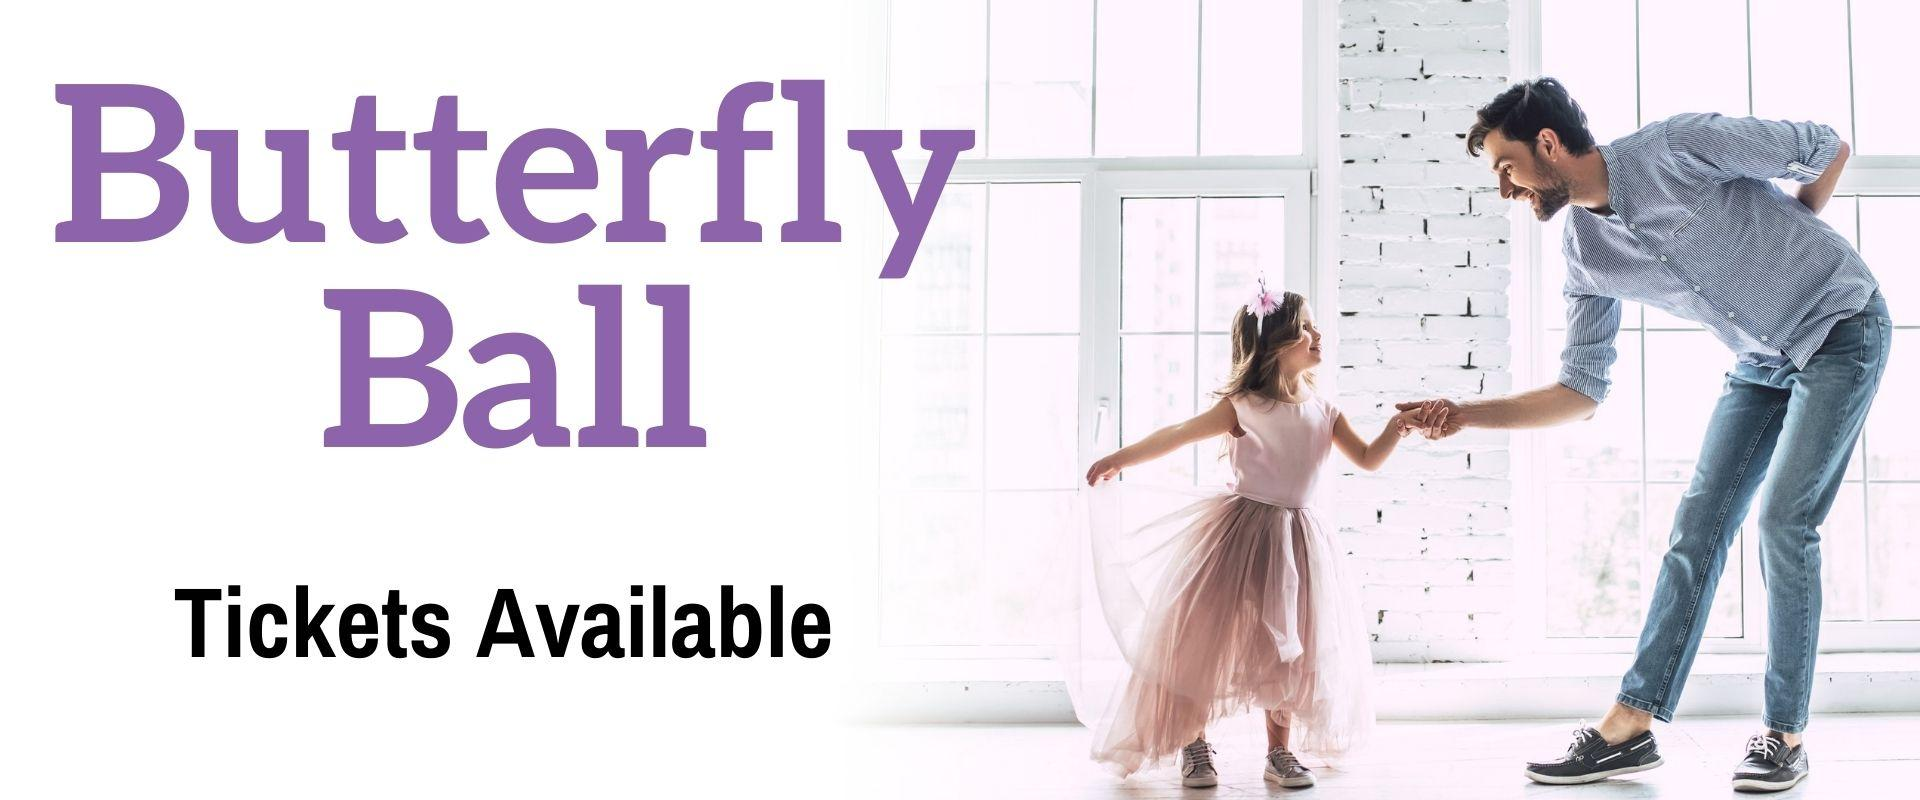 This image shows a graphic of Butterfly Ball. Tickets are available starting April 1.